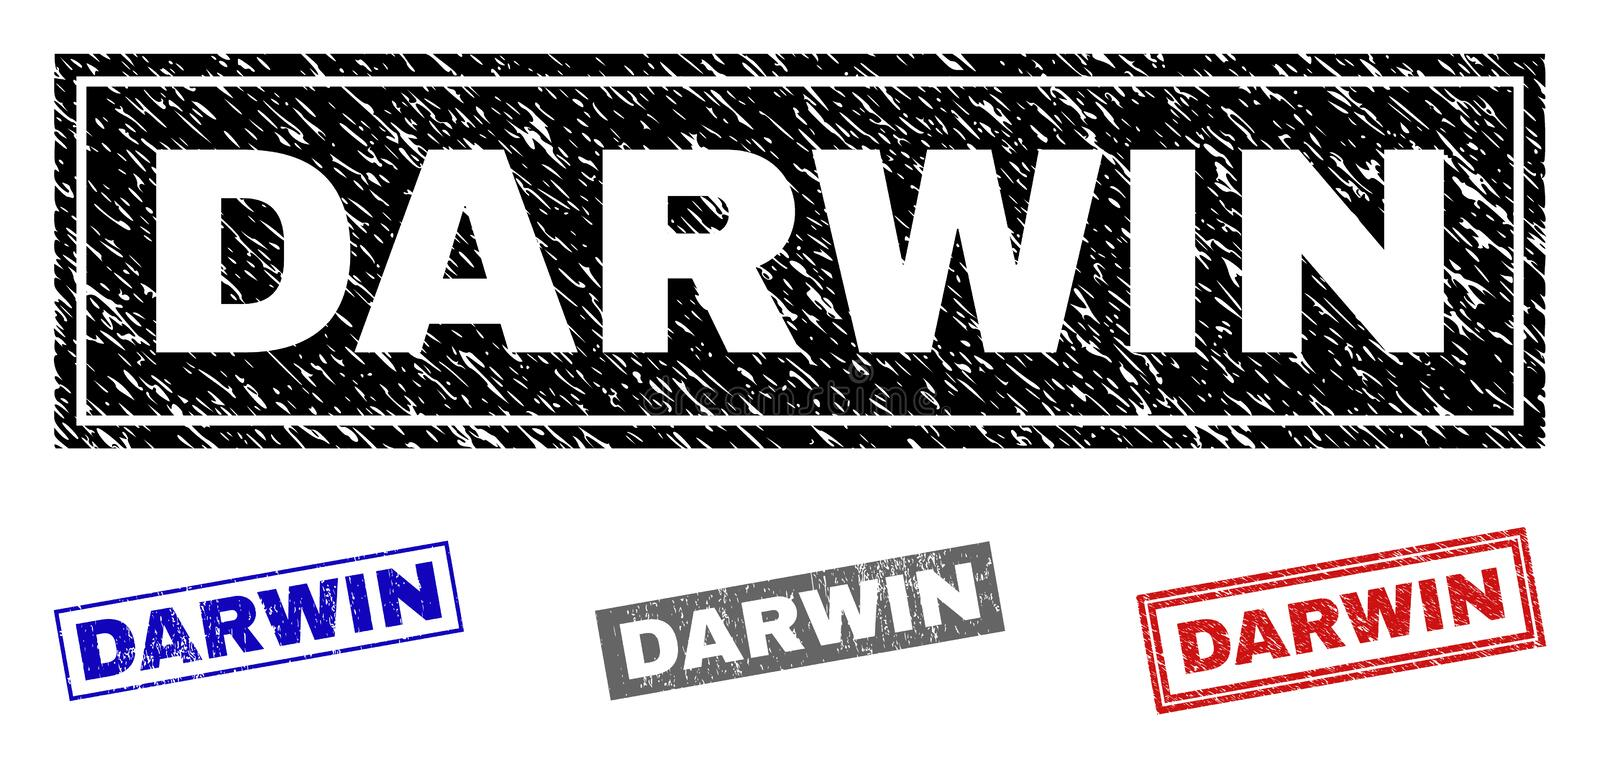 DARWIN Scratched Rectangle Stamps grunge illustration libre de droits